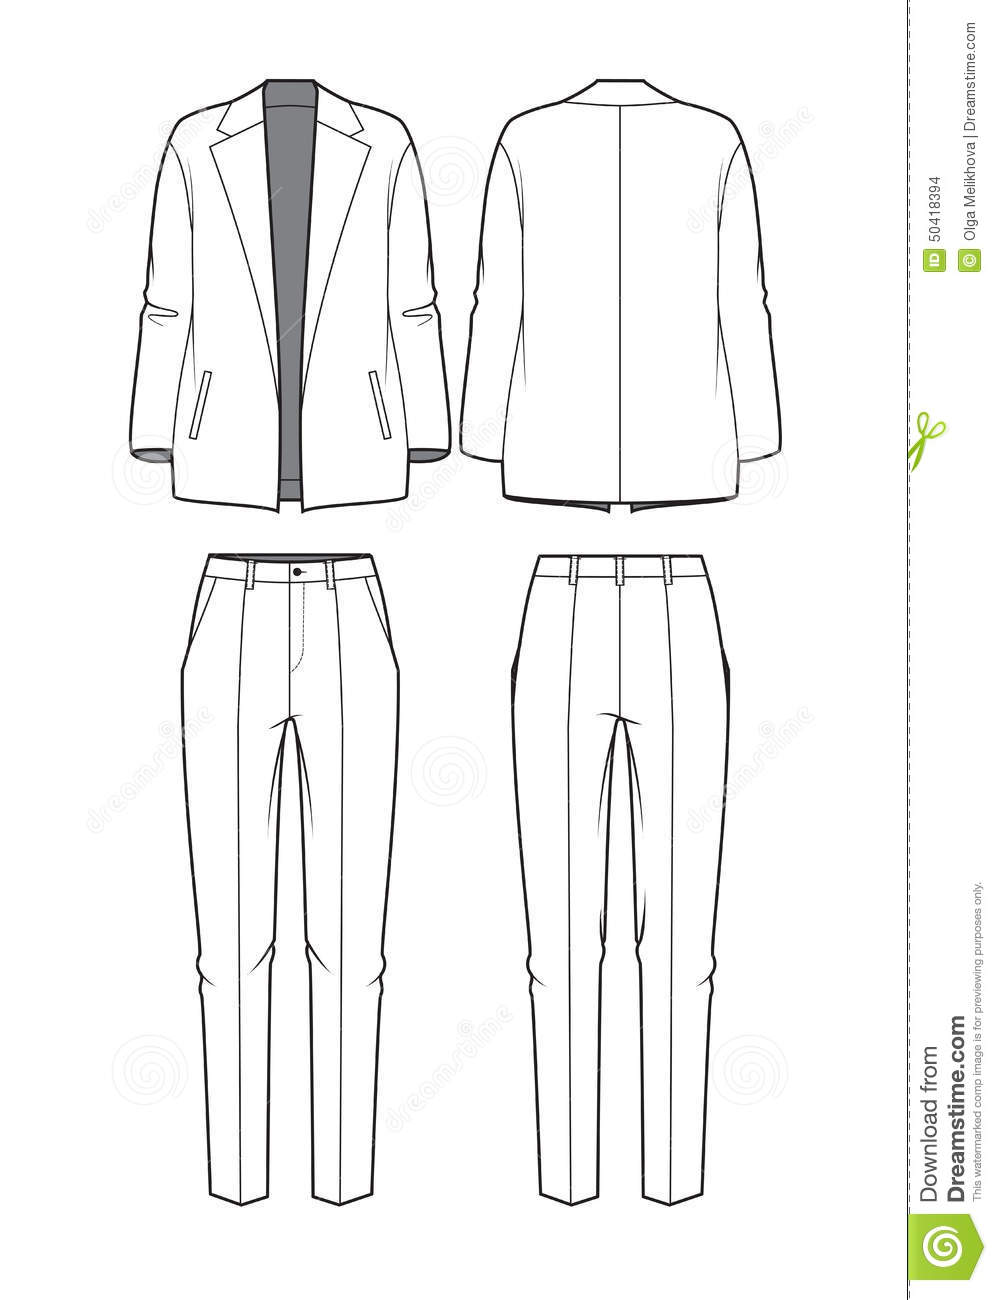 Lastest Pants Stock Vector  Image 54341697